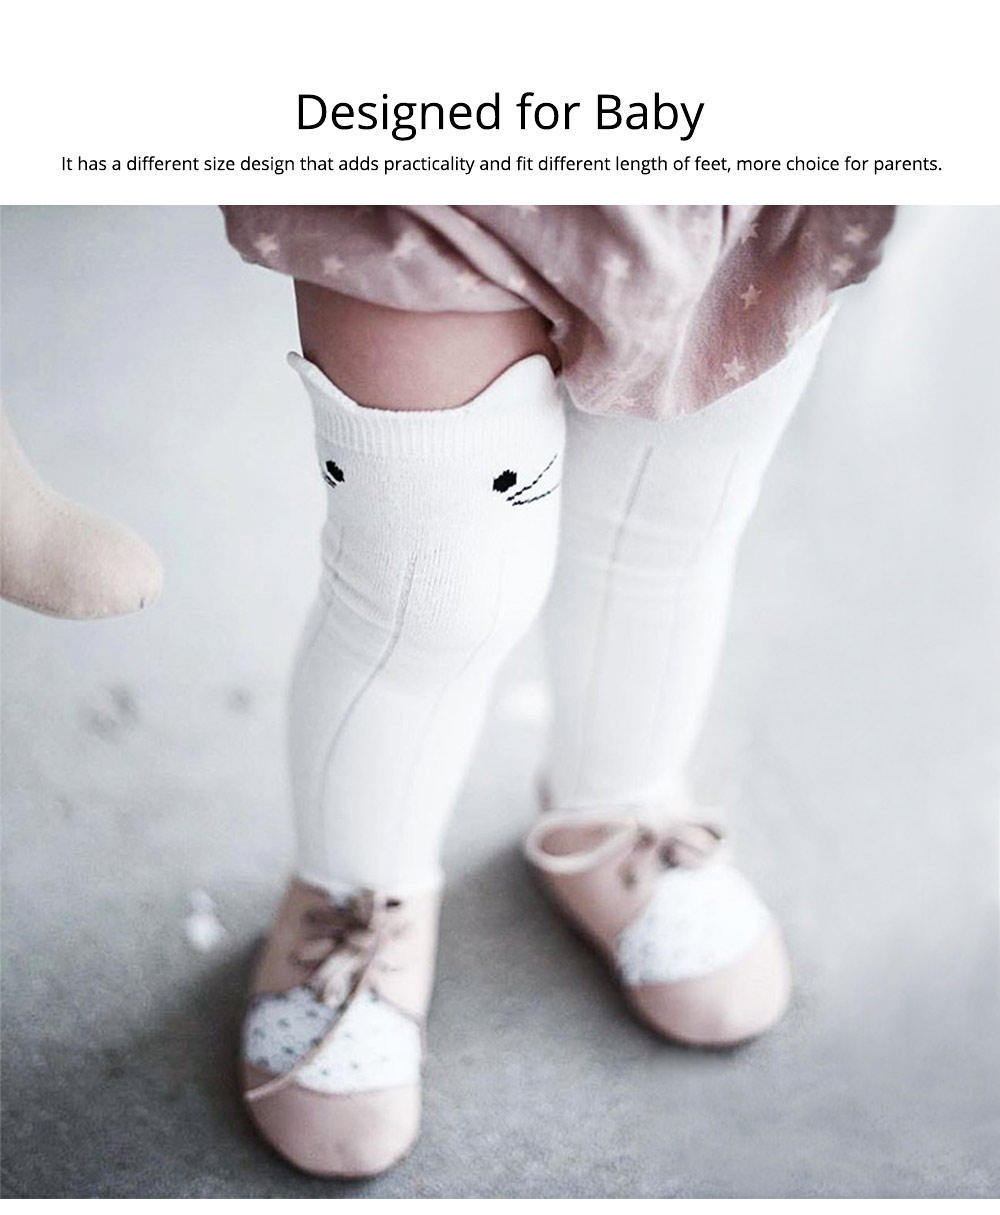 Baby Stockings for 0-3 Years Old Gril, Cute Appearance Pure Color Optional Cotton Fabric Breathable and Skin-friendly Socks 2